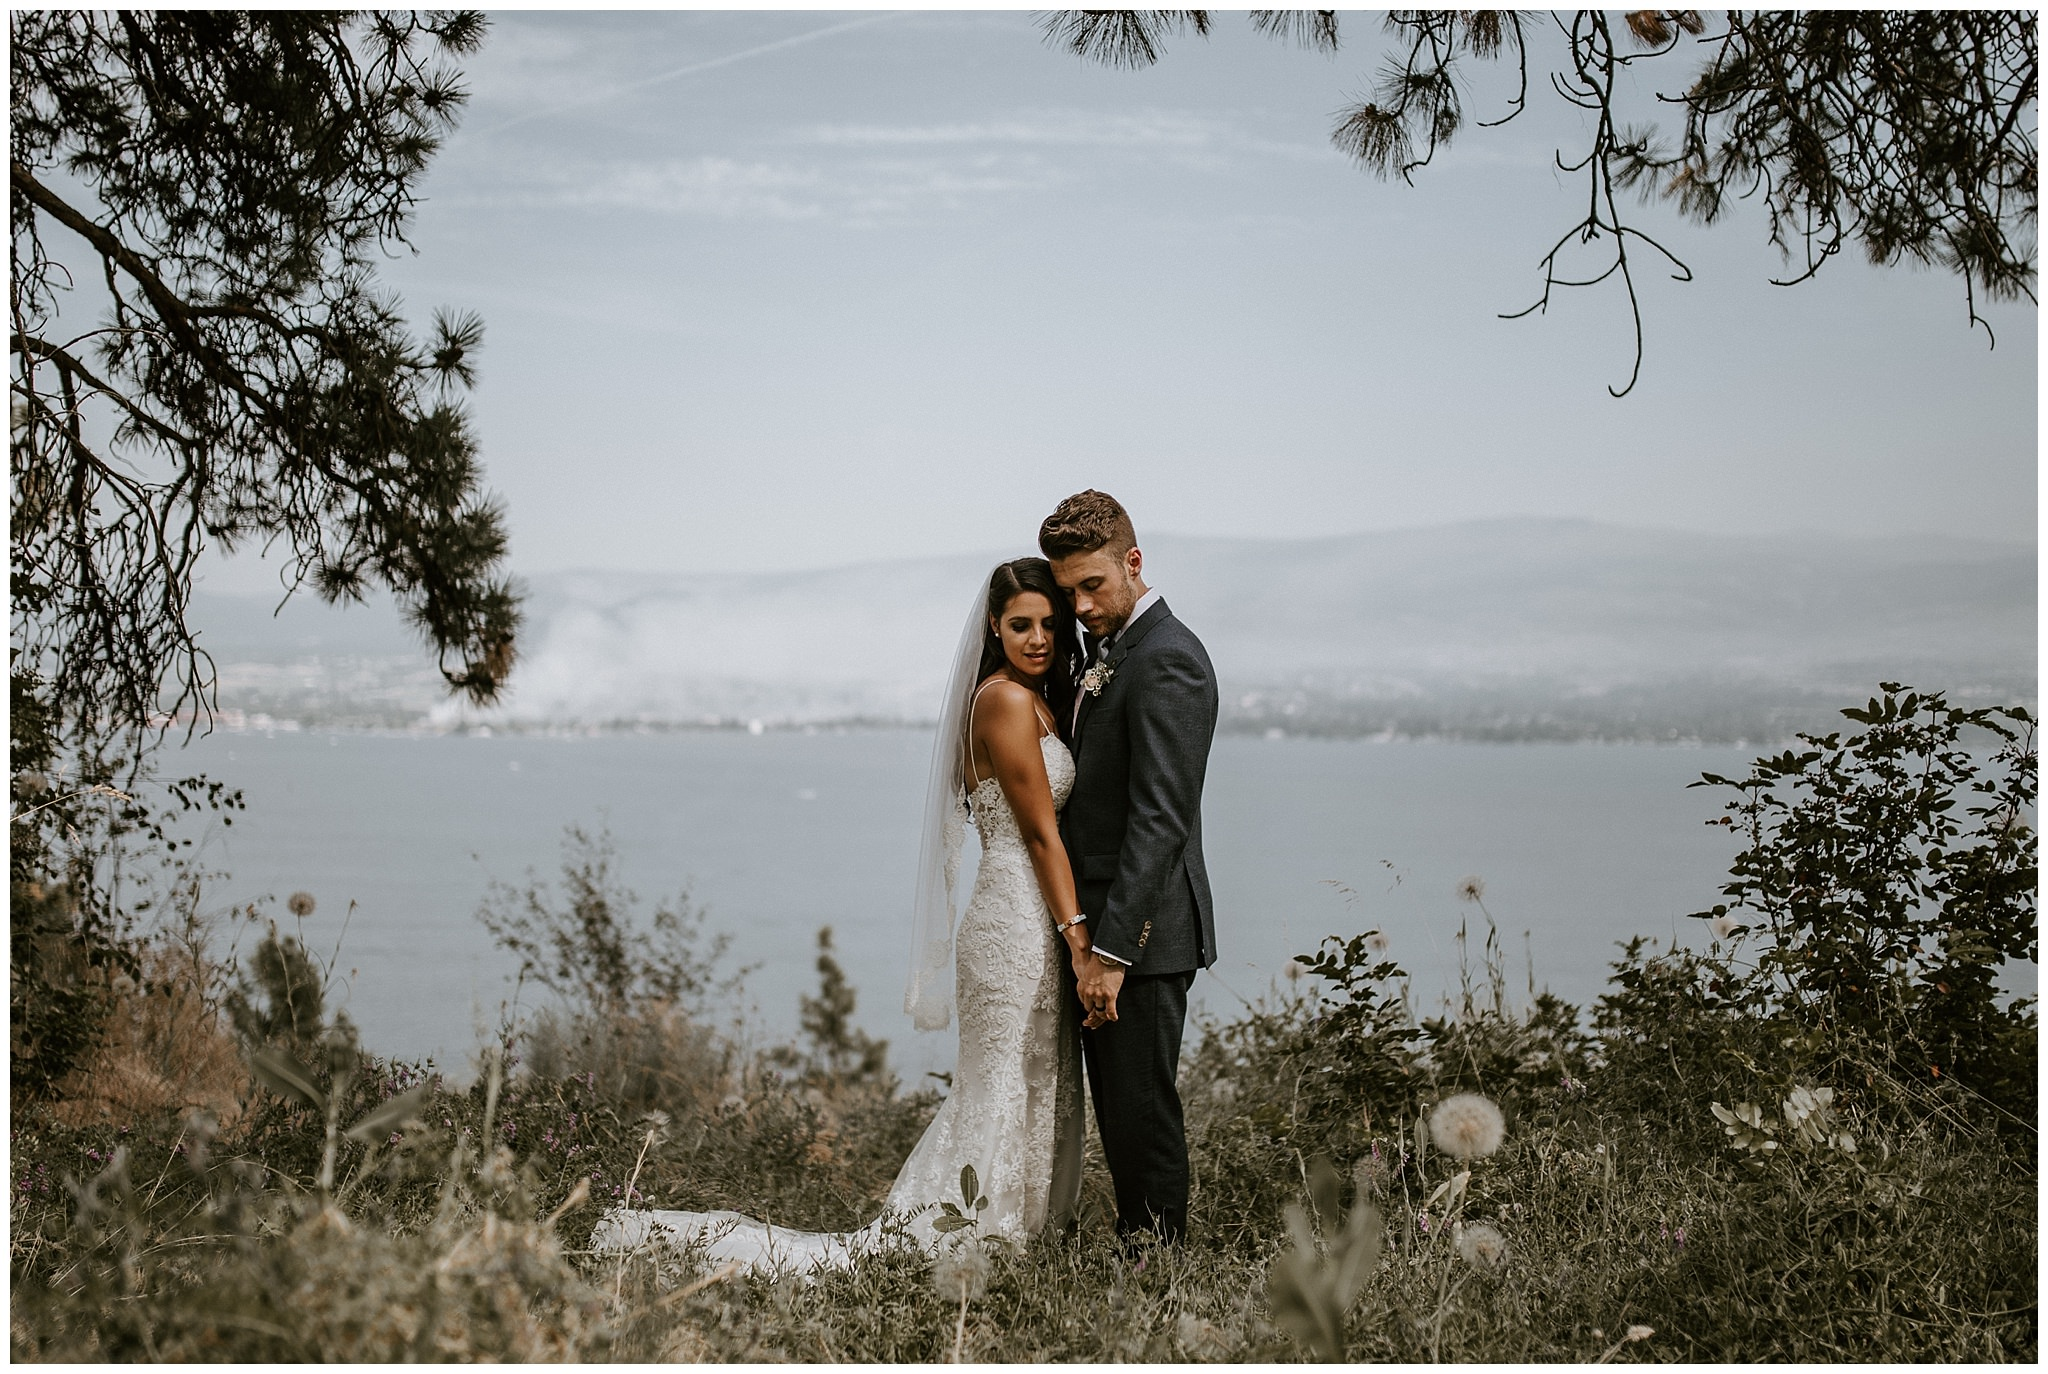 A bride and groom in front of a view of Okanagan Lake